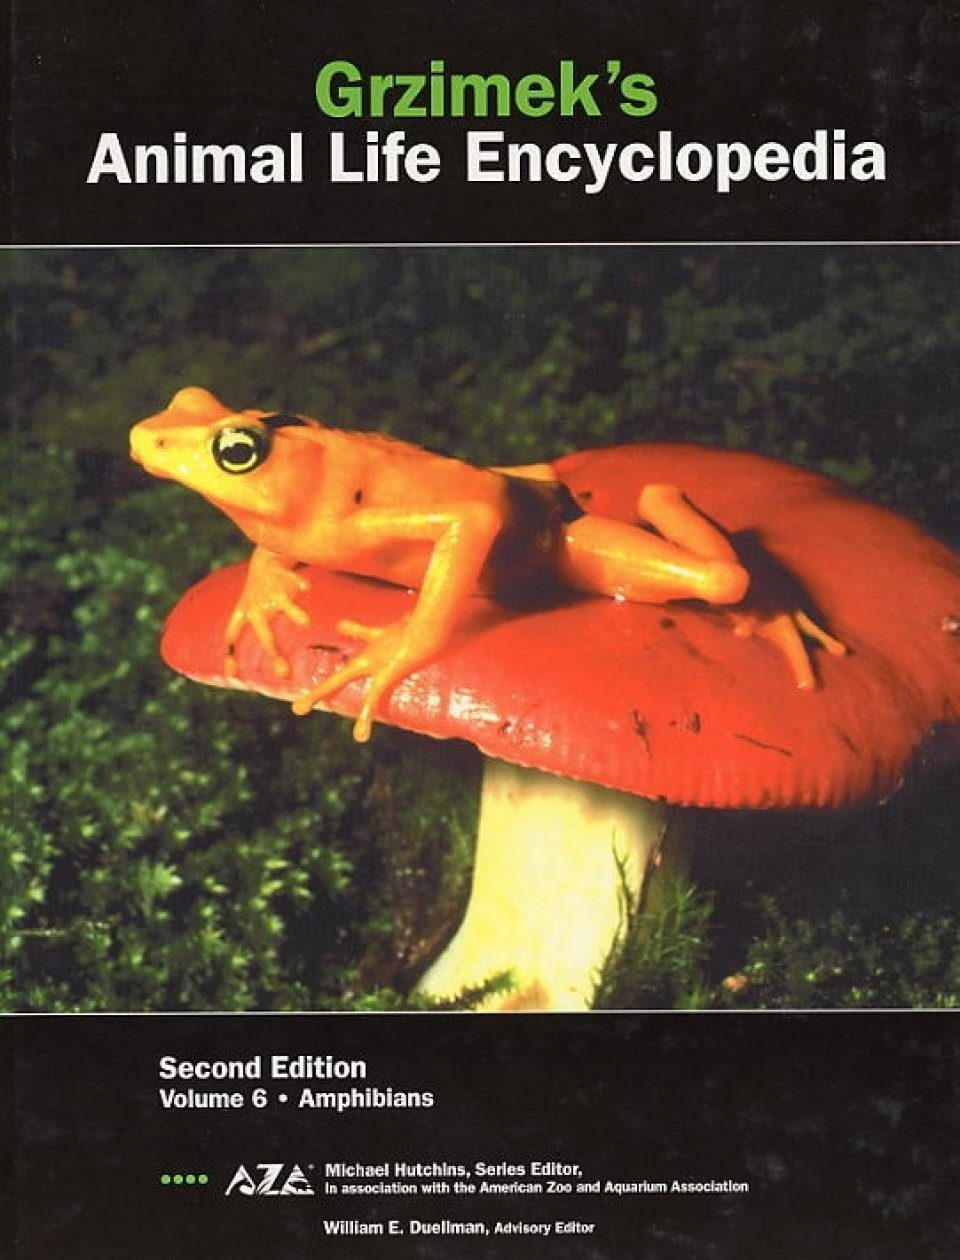 Grzimek's Animal Life Encyclopedia, Volume 6: Amphibians